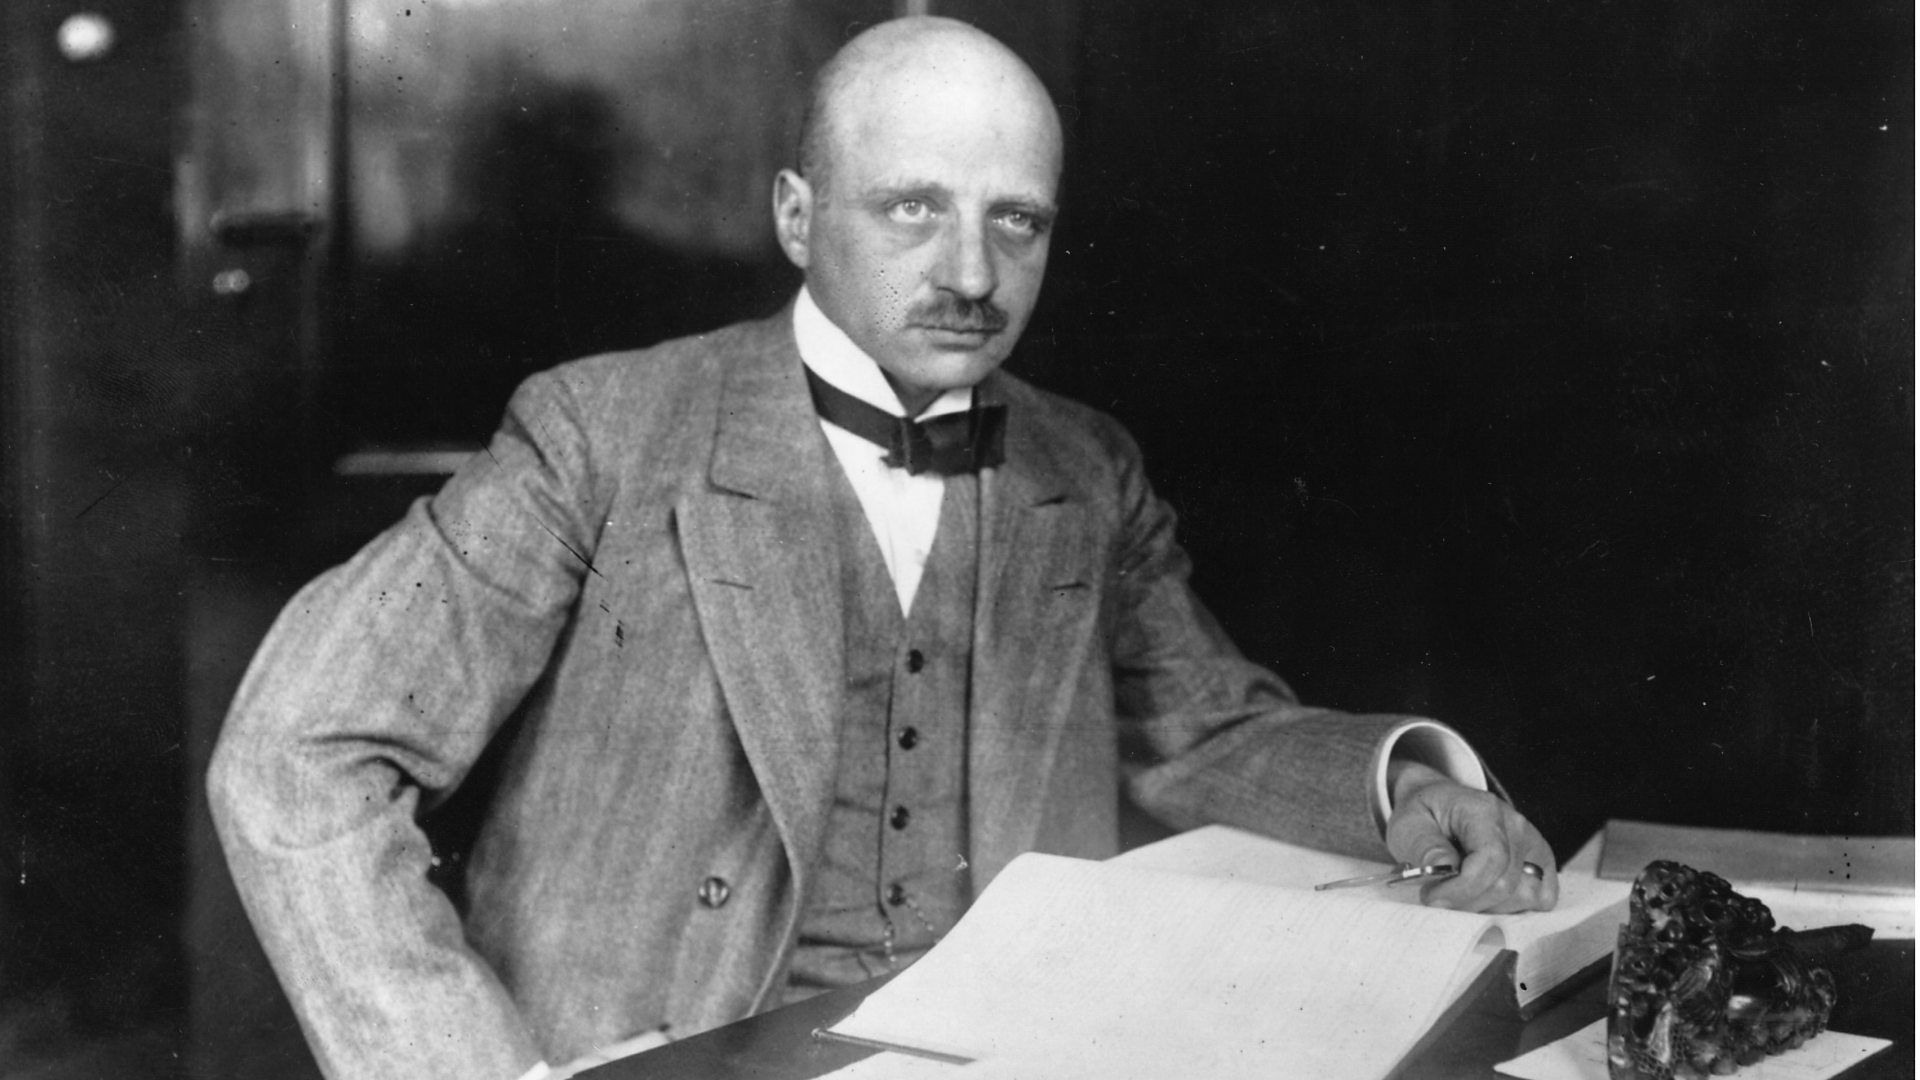 fritz haber biography Fritz haber: fritz haber, german physical chemist who won the 1918 nobel prize for chemistry for his work on nitrogen fixation (the haber-bosch process).